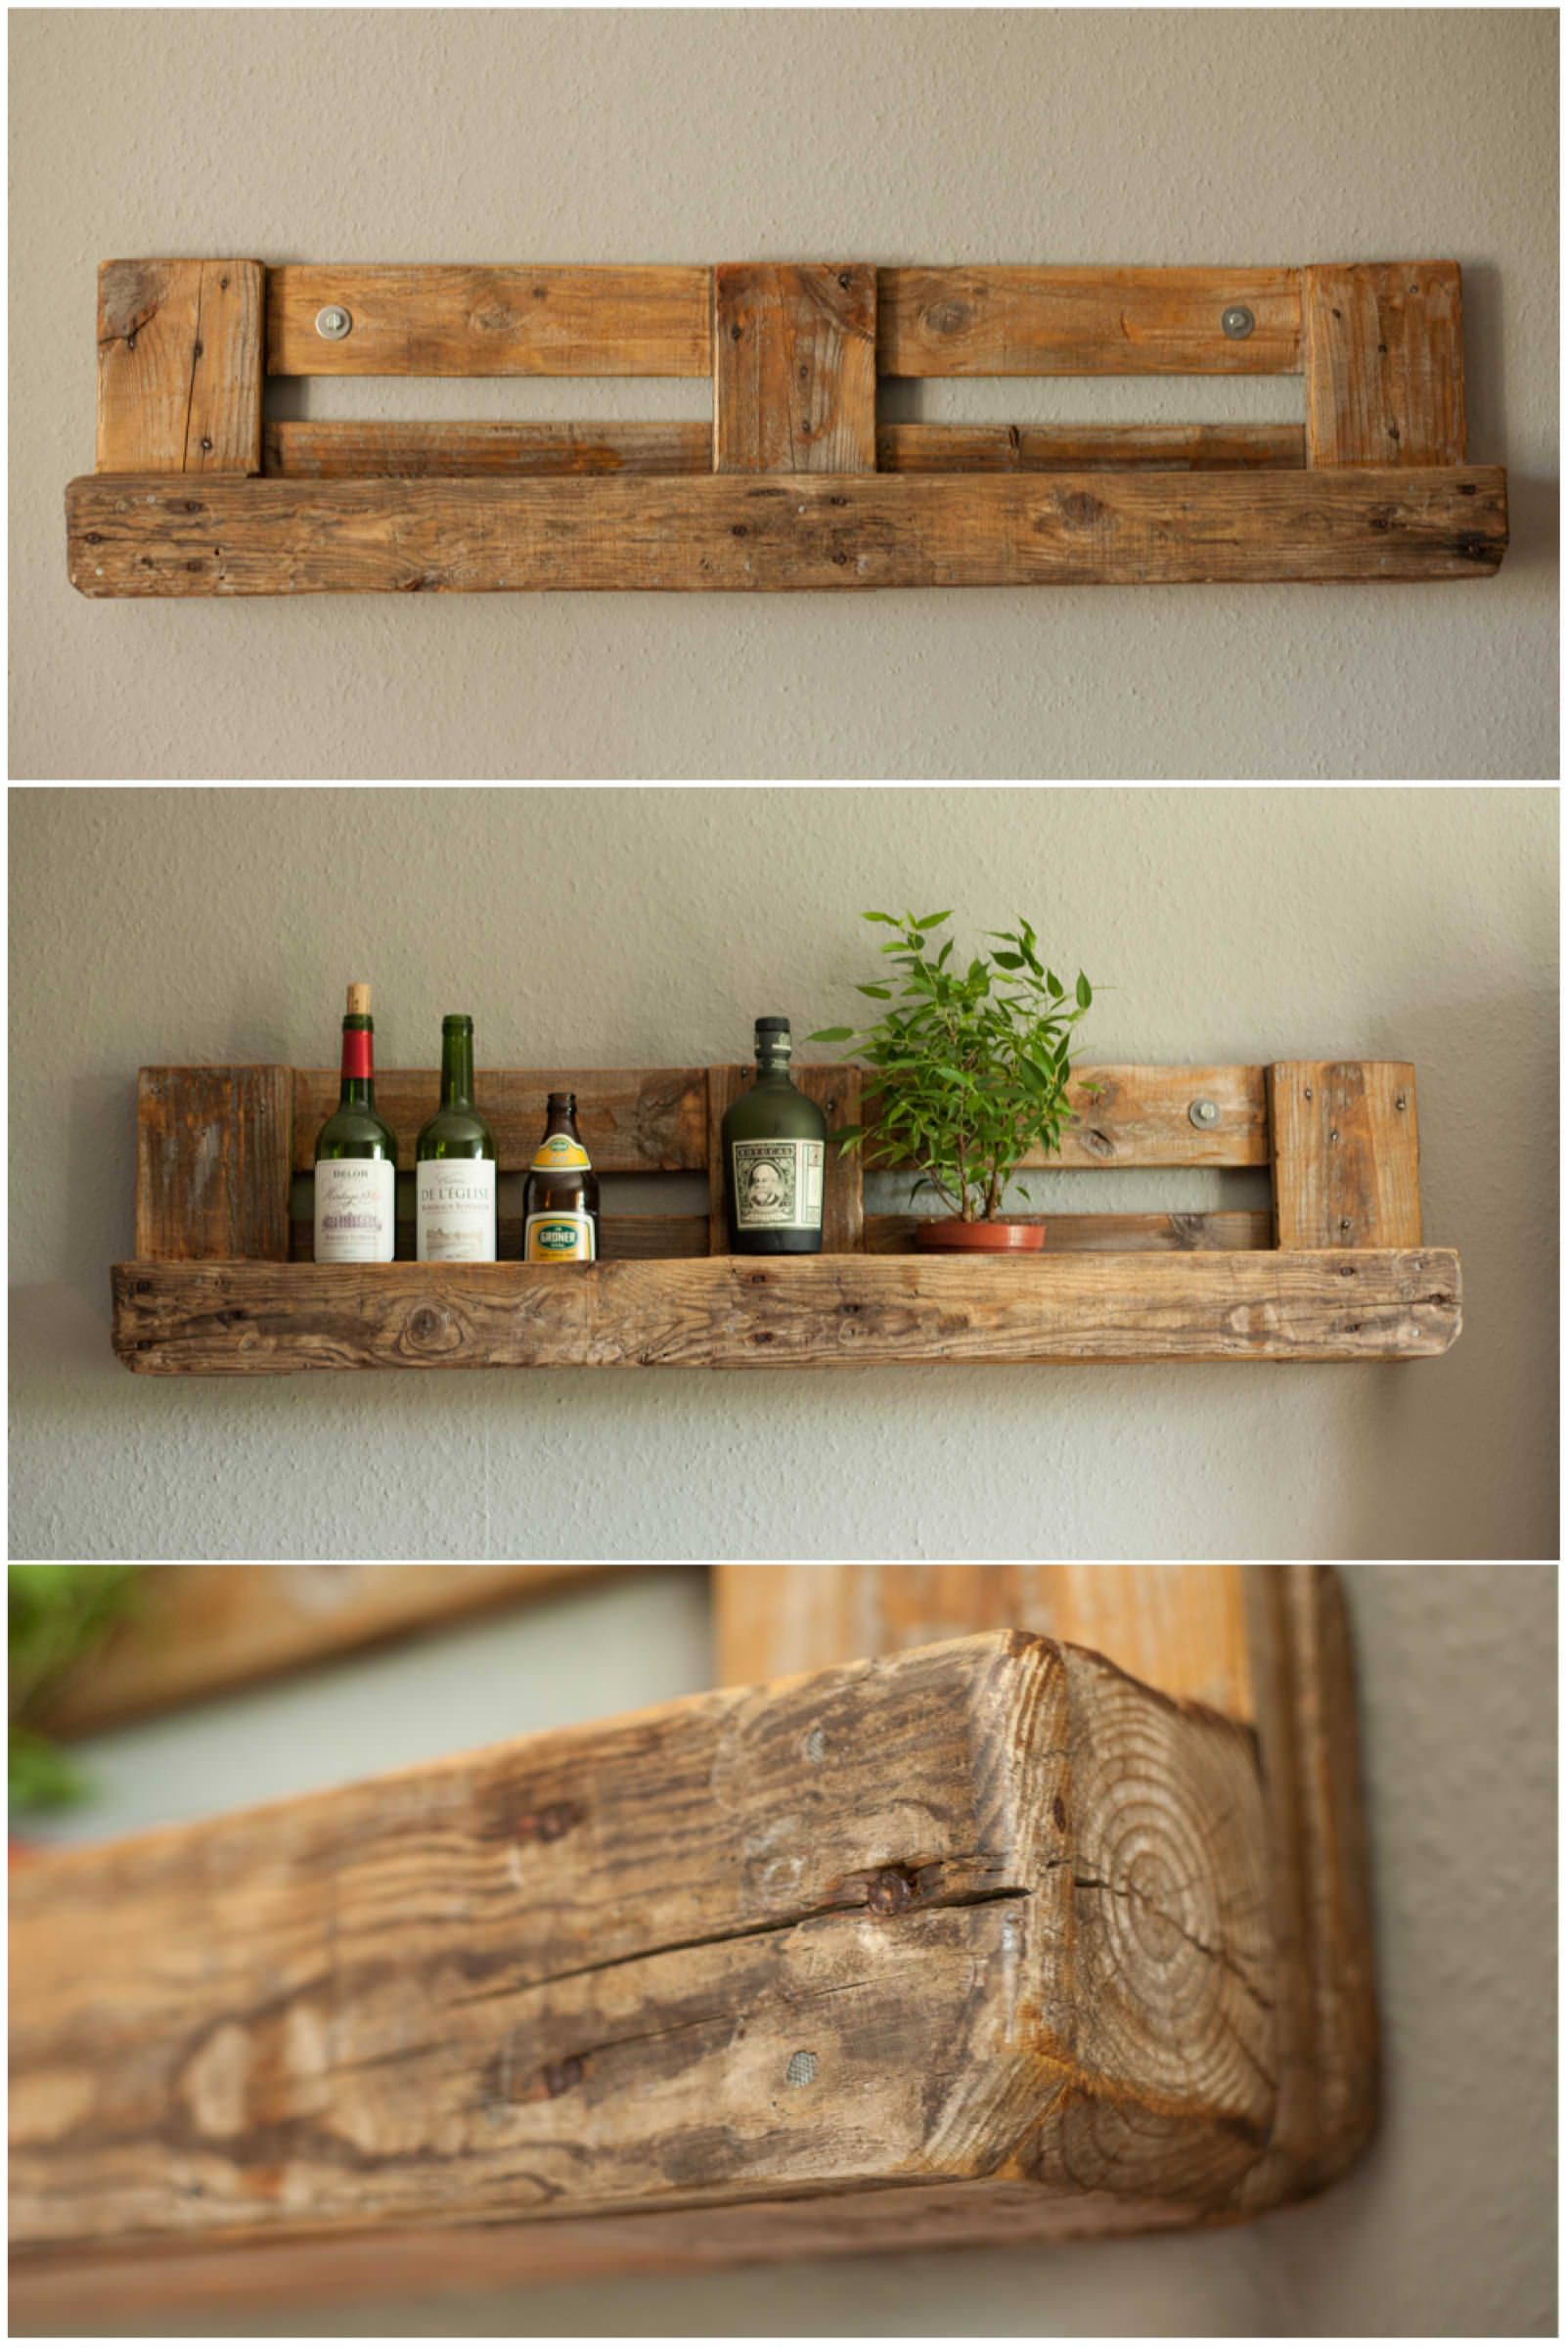 pallet rustic shelf pallet ideas repurposed pallets. Black Bedroom Furniture Sets. Home Design Ideas